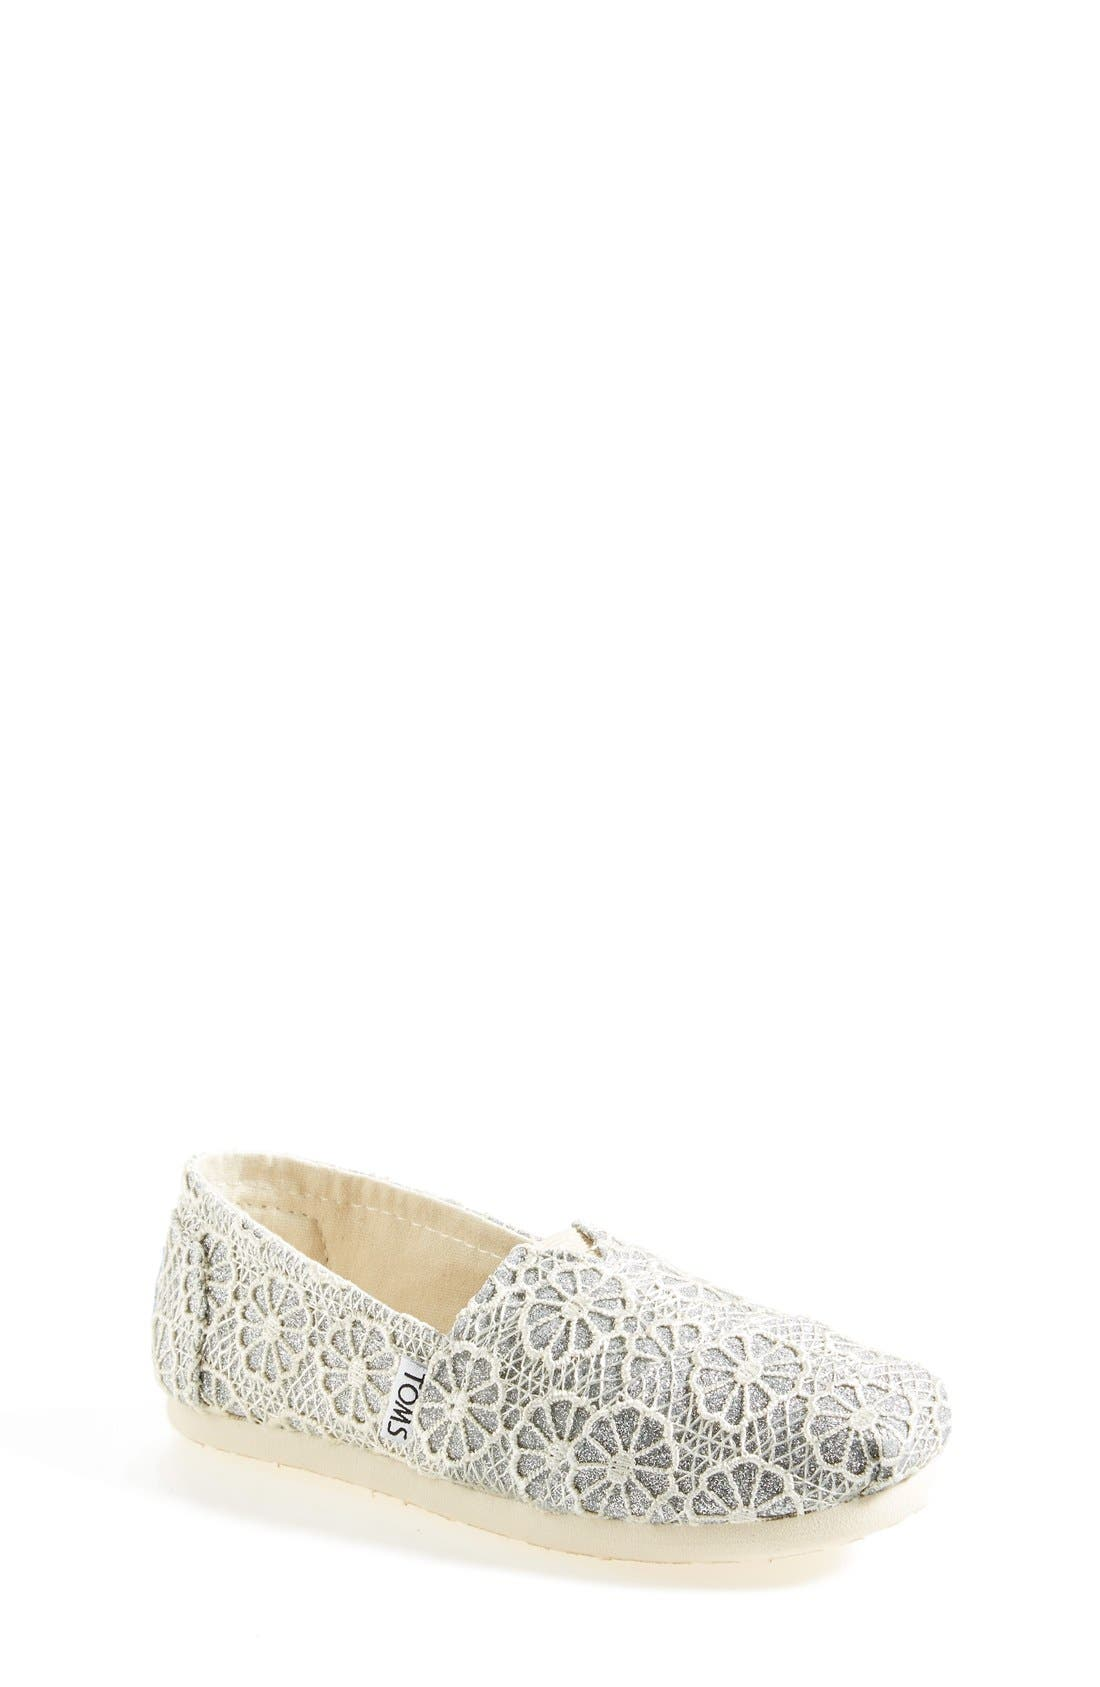 Alternate Image 1 Selected - TOMS 'Youth - Glitter' Crochet Slip-On (Toddler, Little Kid & Big Kid)